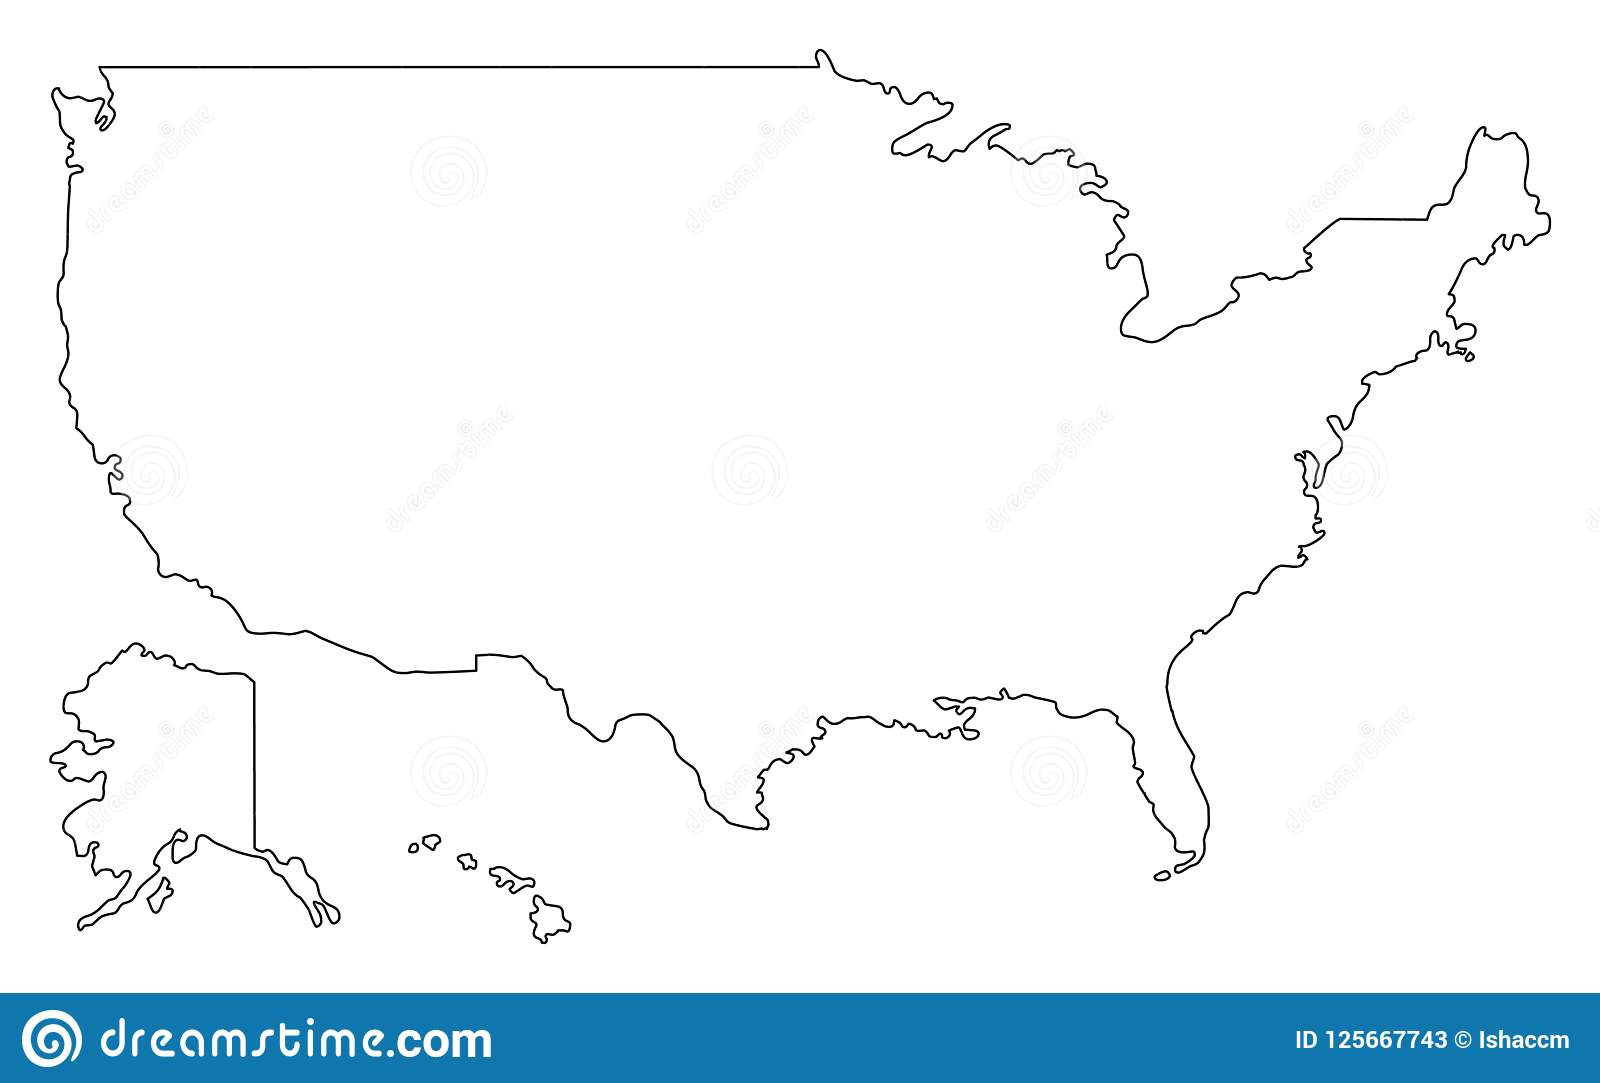 United States Of America Map Outline.United States Of America Map Outline Vector Illustartion Usa Map